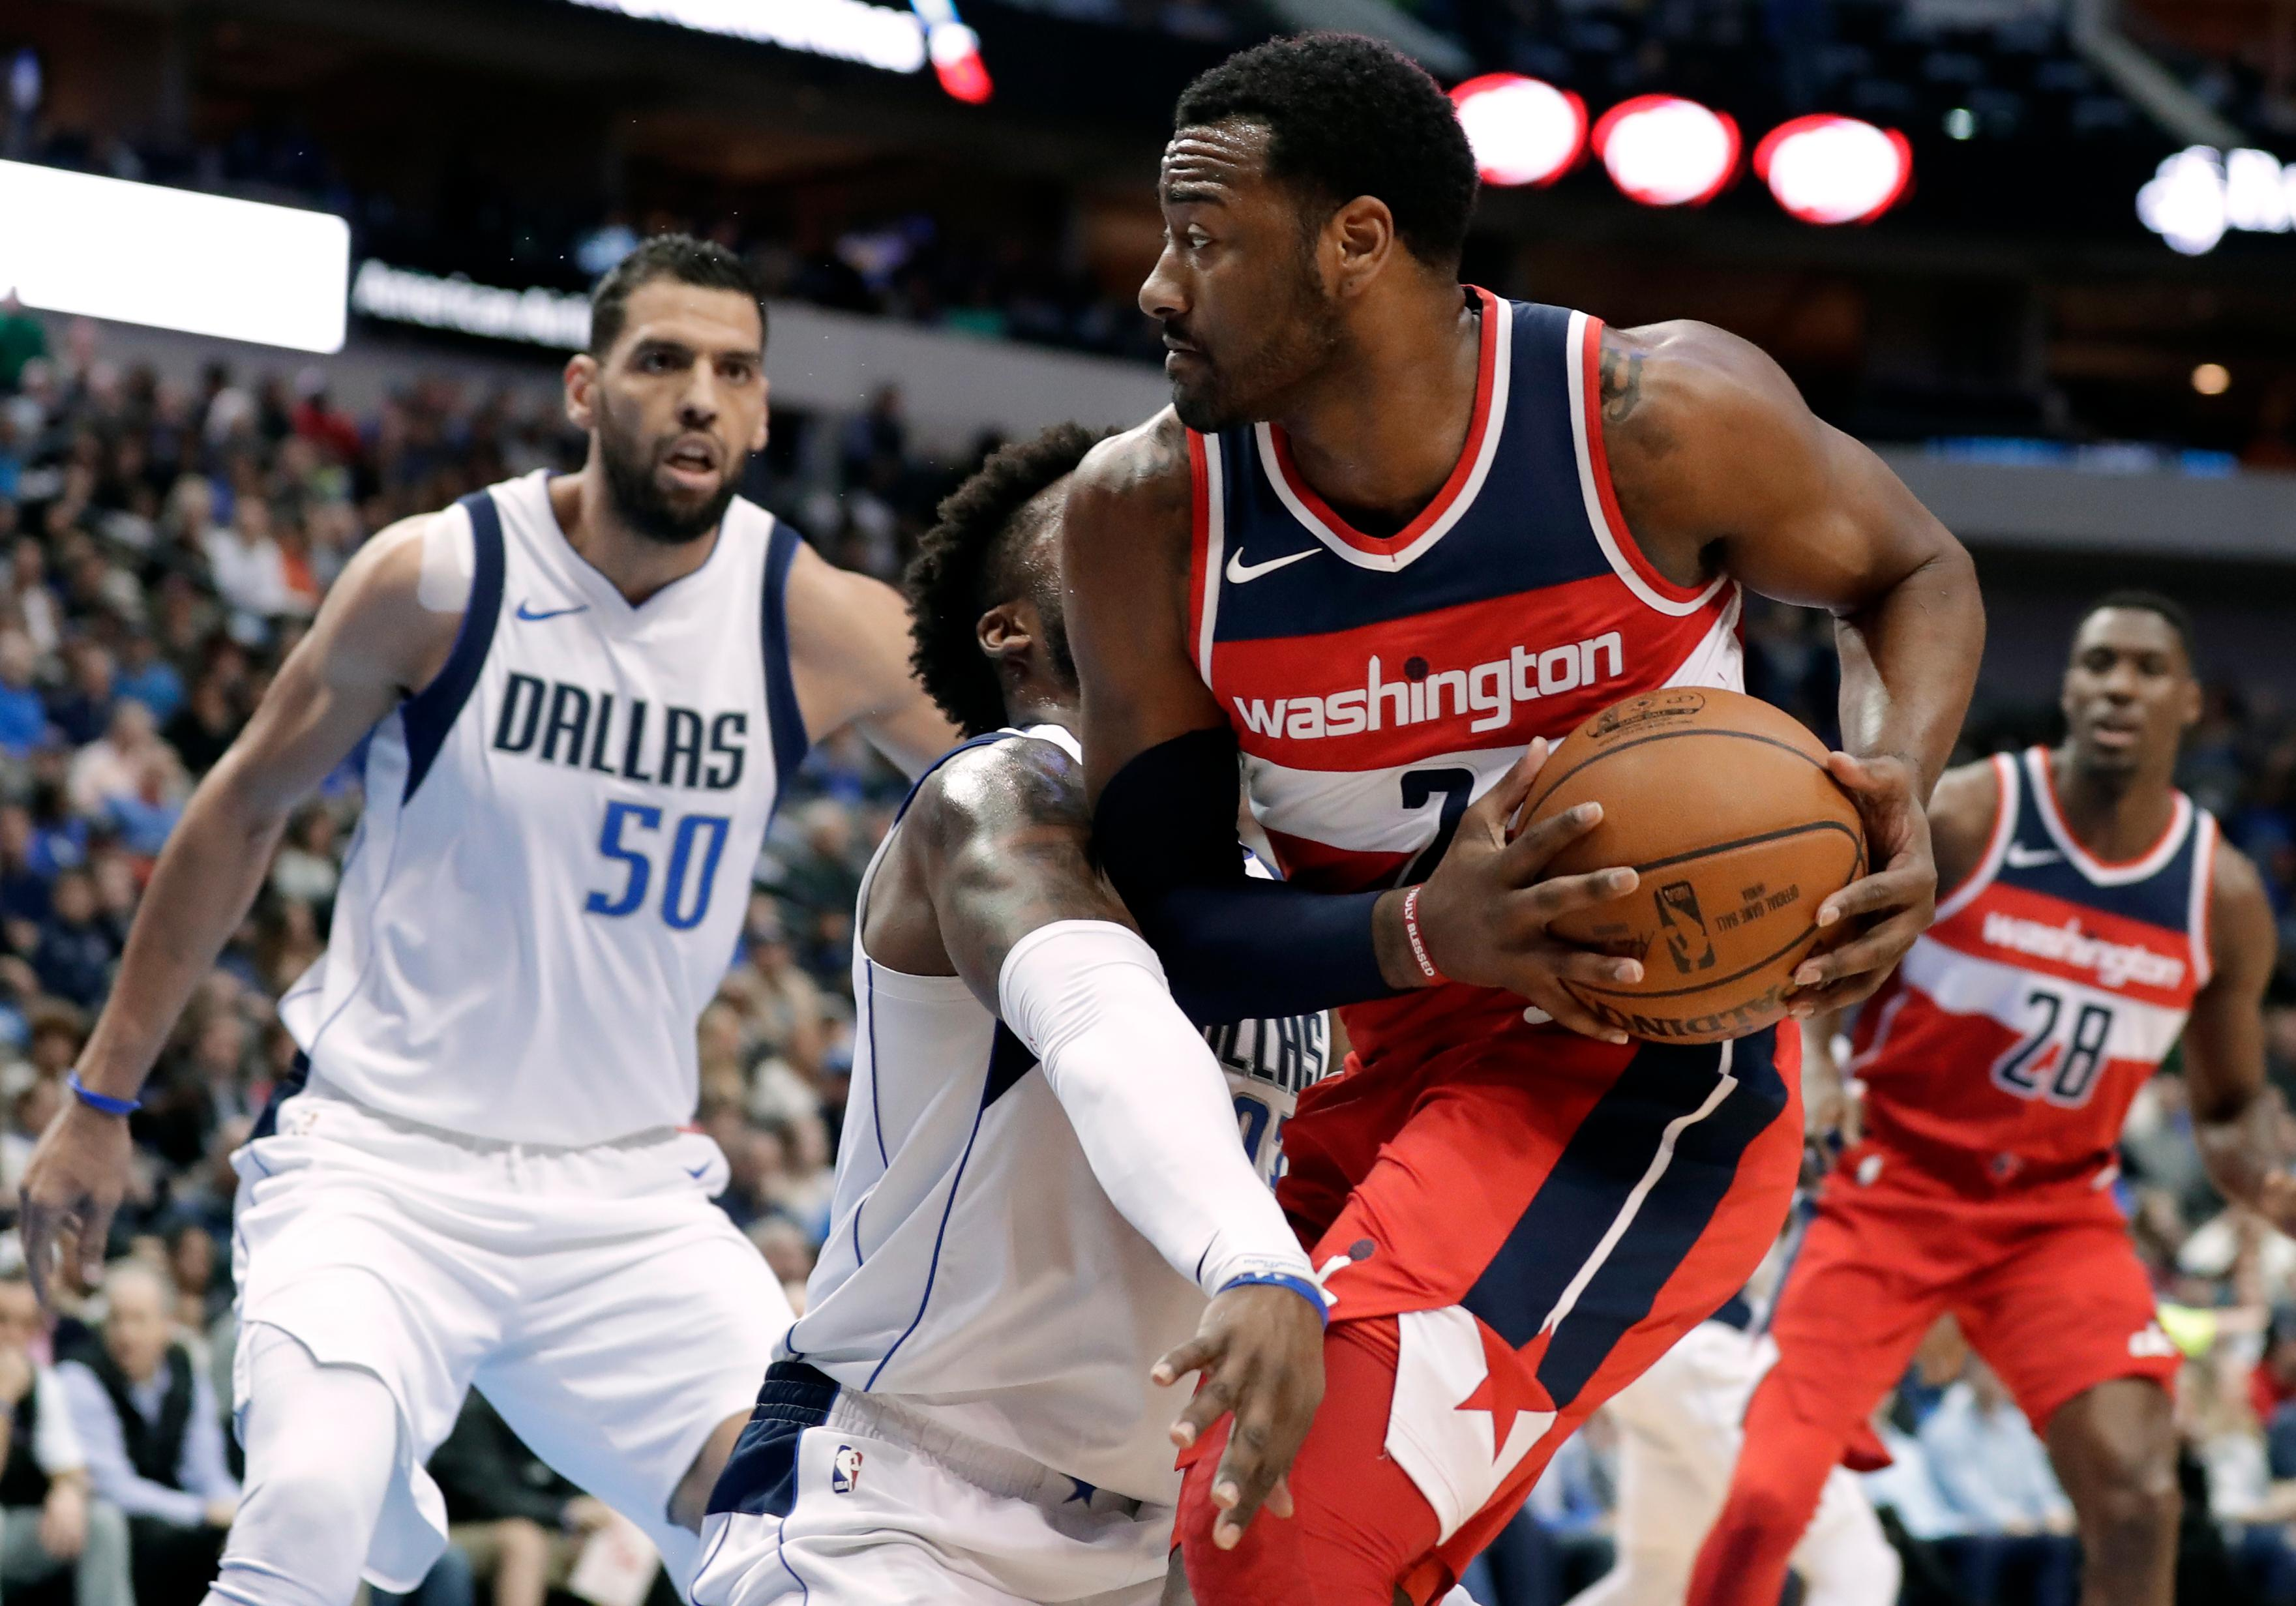 Dallas Mavericks guard Wesley Matthews, center left, and Salah Mejri (50), of Tunisia, defend as Washington Wizards' John Wall (2) works for a shot opportunity in the first half of an NBA basketball game, Monday, Jan. 22, 2018, in Dallas. (AP Photo/Tony Gutierrez)